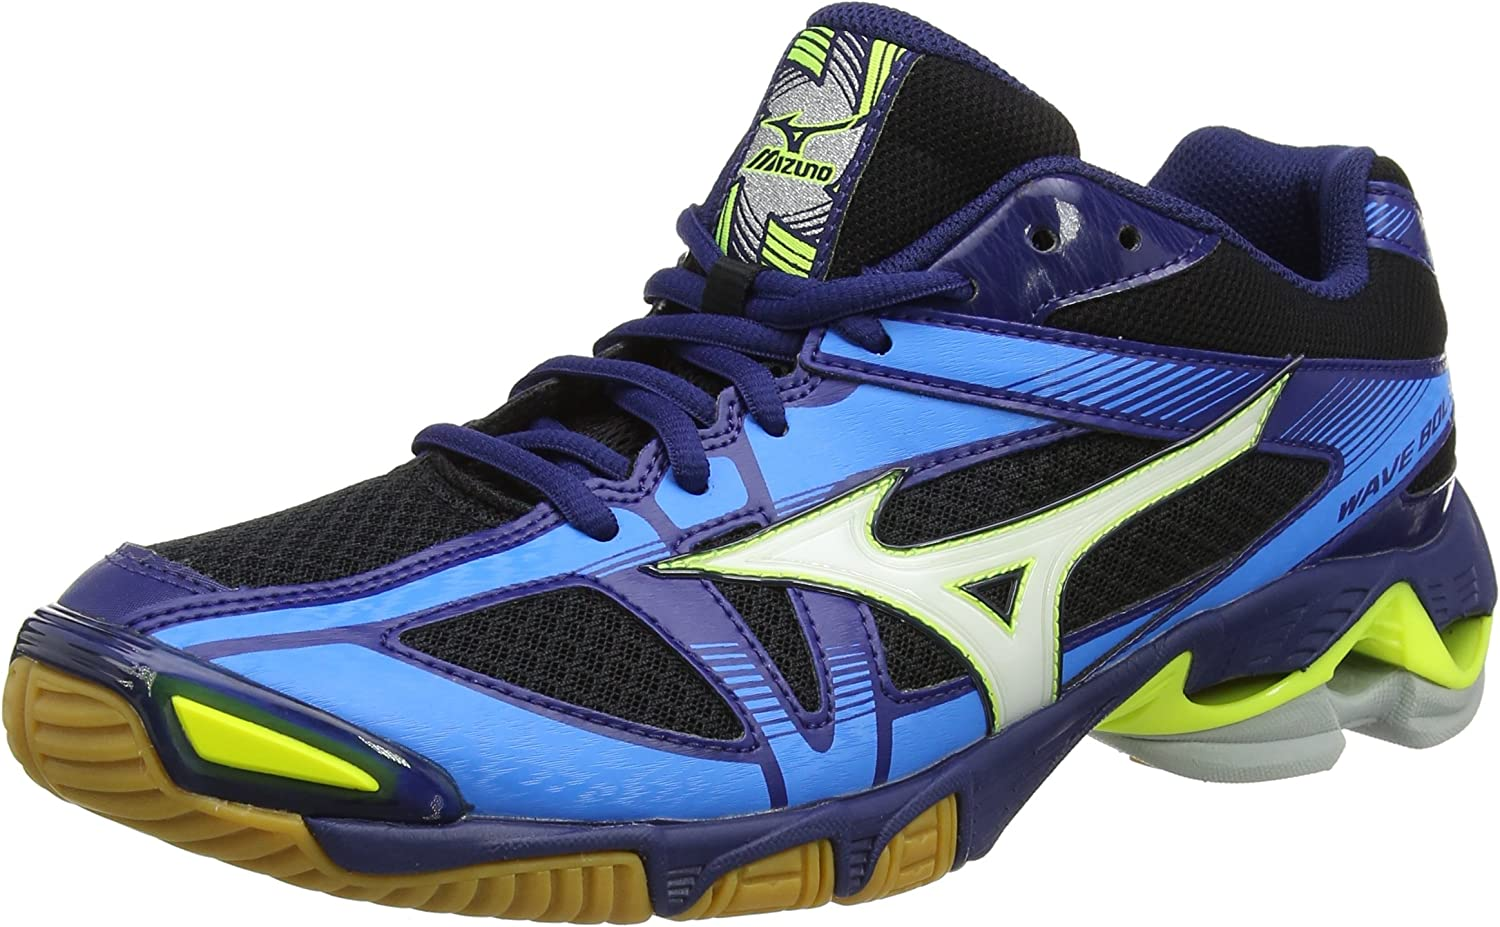 3d4b85a35b23 Mizuno Men's Wave Bolt Volleyball Volleyball Volleyball shoes fafb30 ...